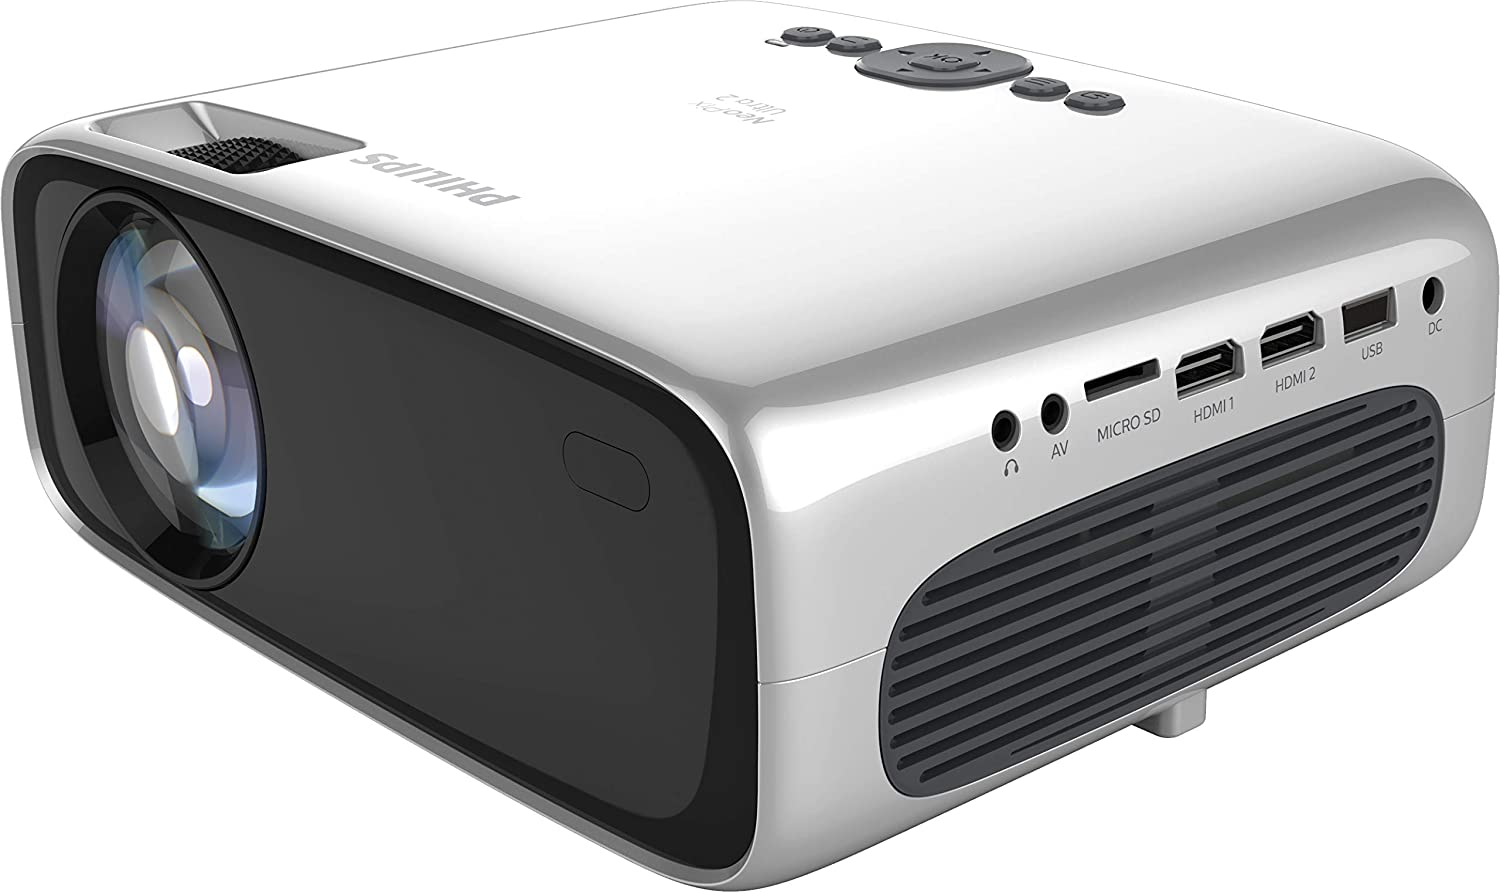 Philips NeoPix Ultra 2, True Full HD Projector with Apps and Built-in Media Player